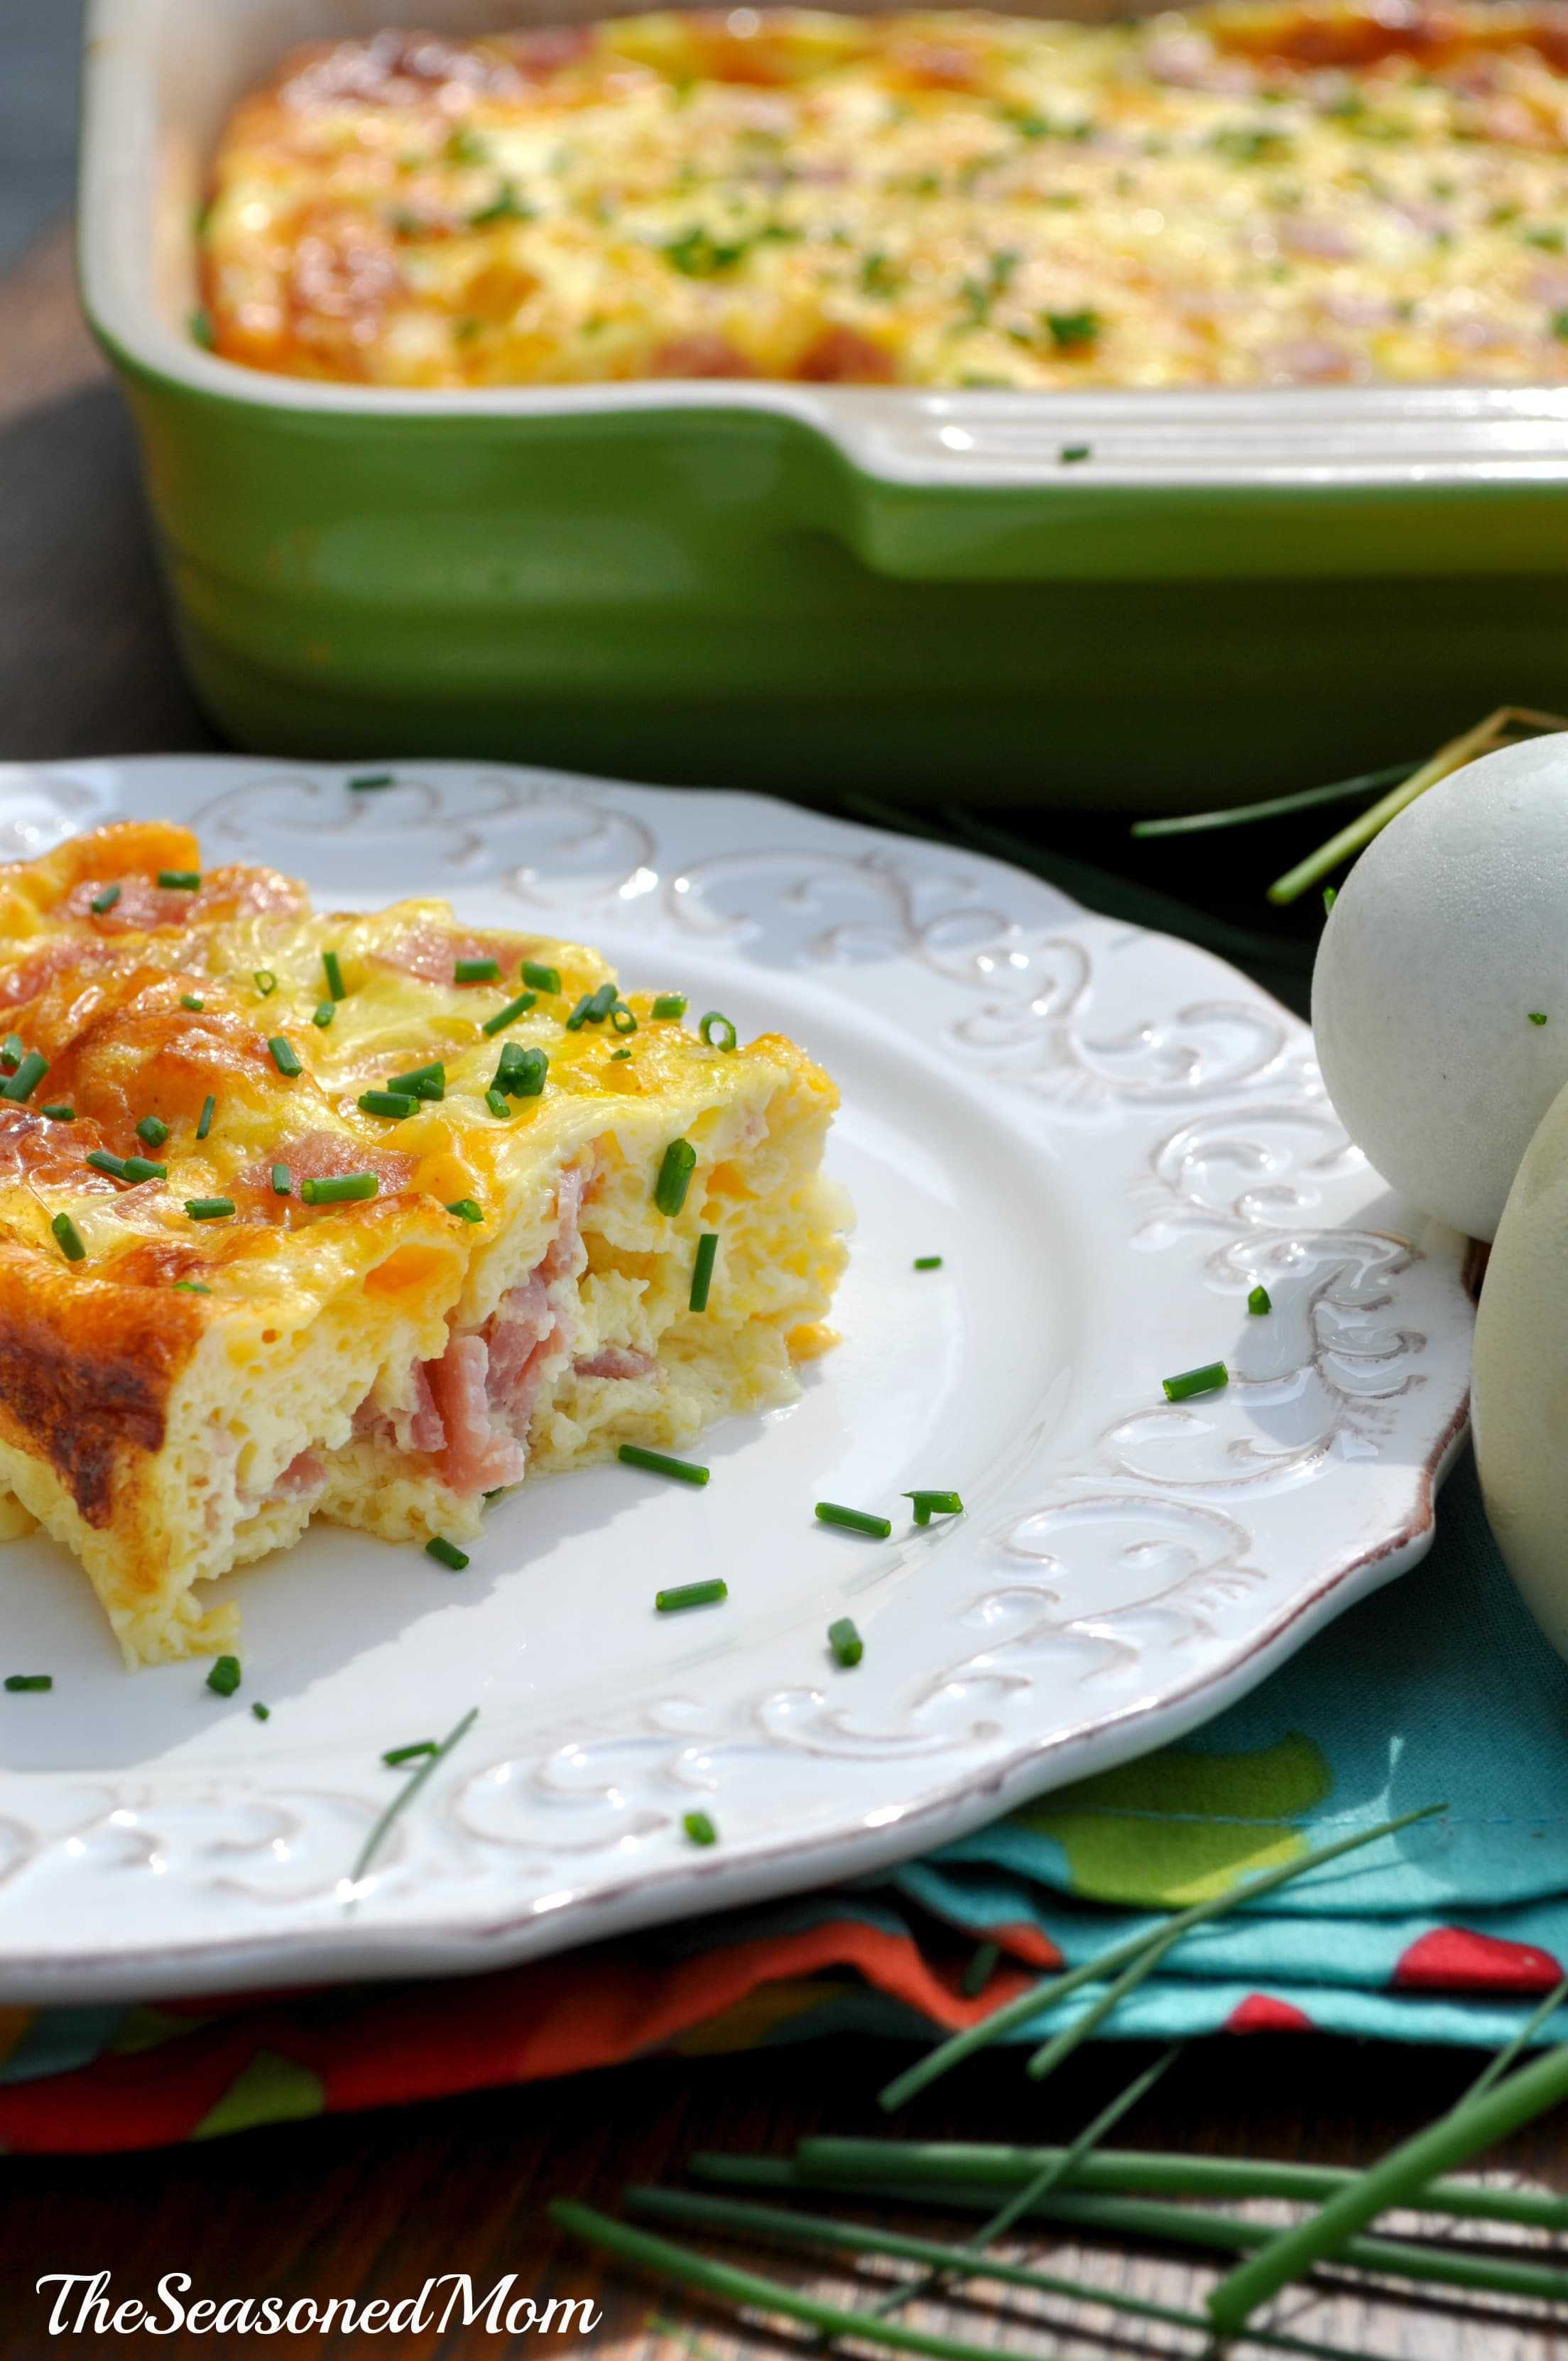 Baked Ham and Cheese Omelet - The Seasoned Mom